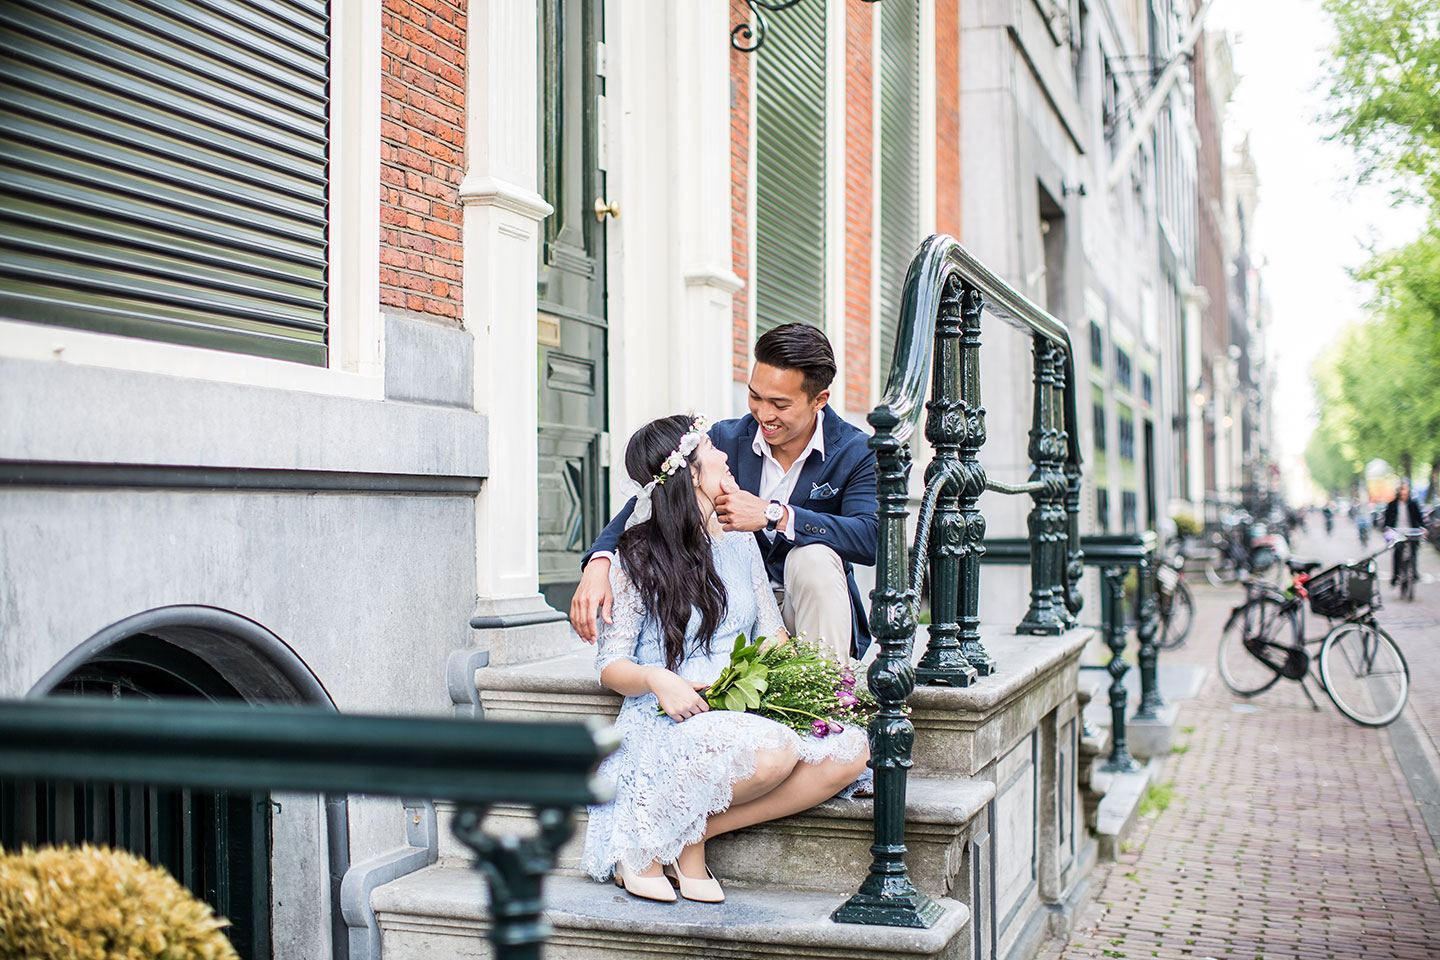 13-prewedding-shoot-amsterdam